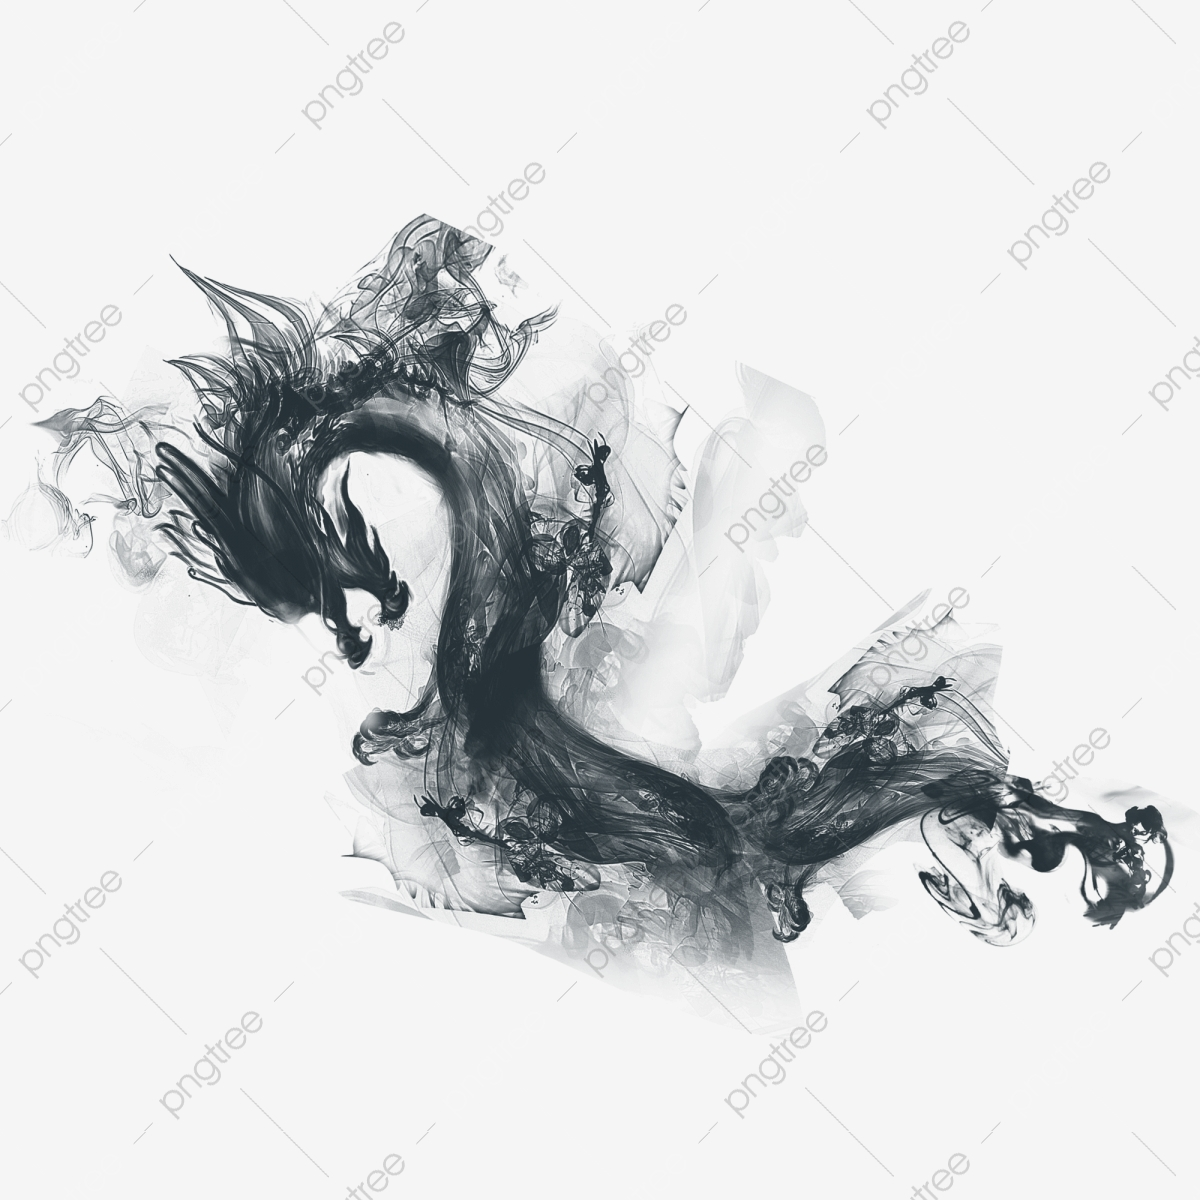 ink chinese dragon ink chinese dragon dragon png transparent image and clipart for free download https pngtree com freepng ink chinese dragon 263406 html